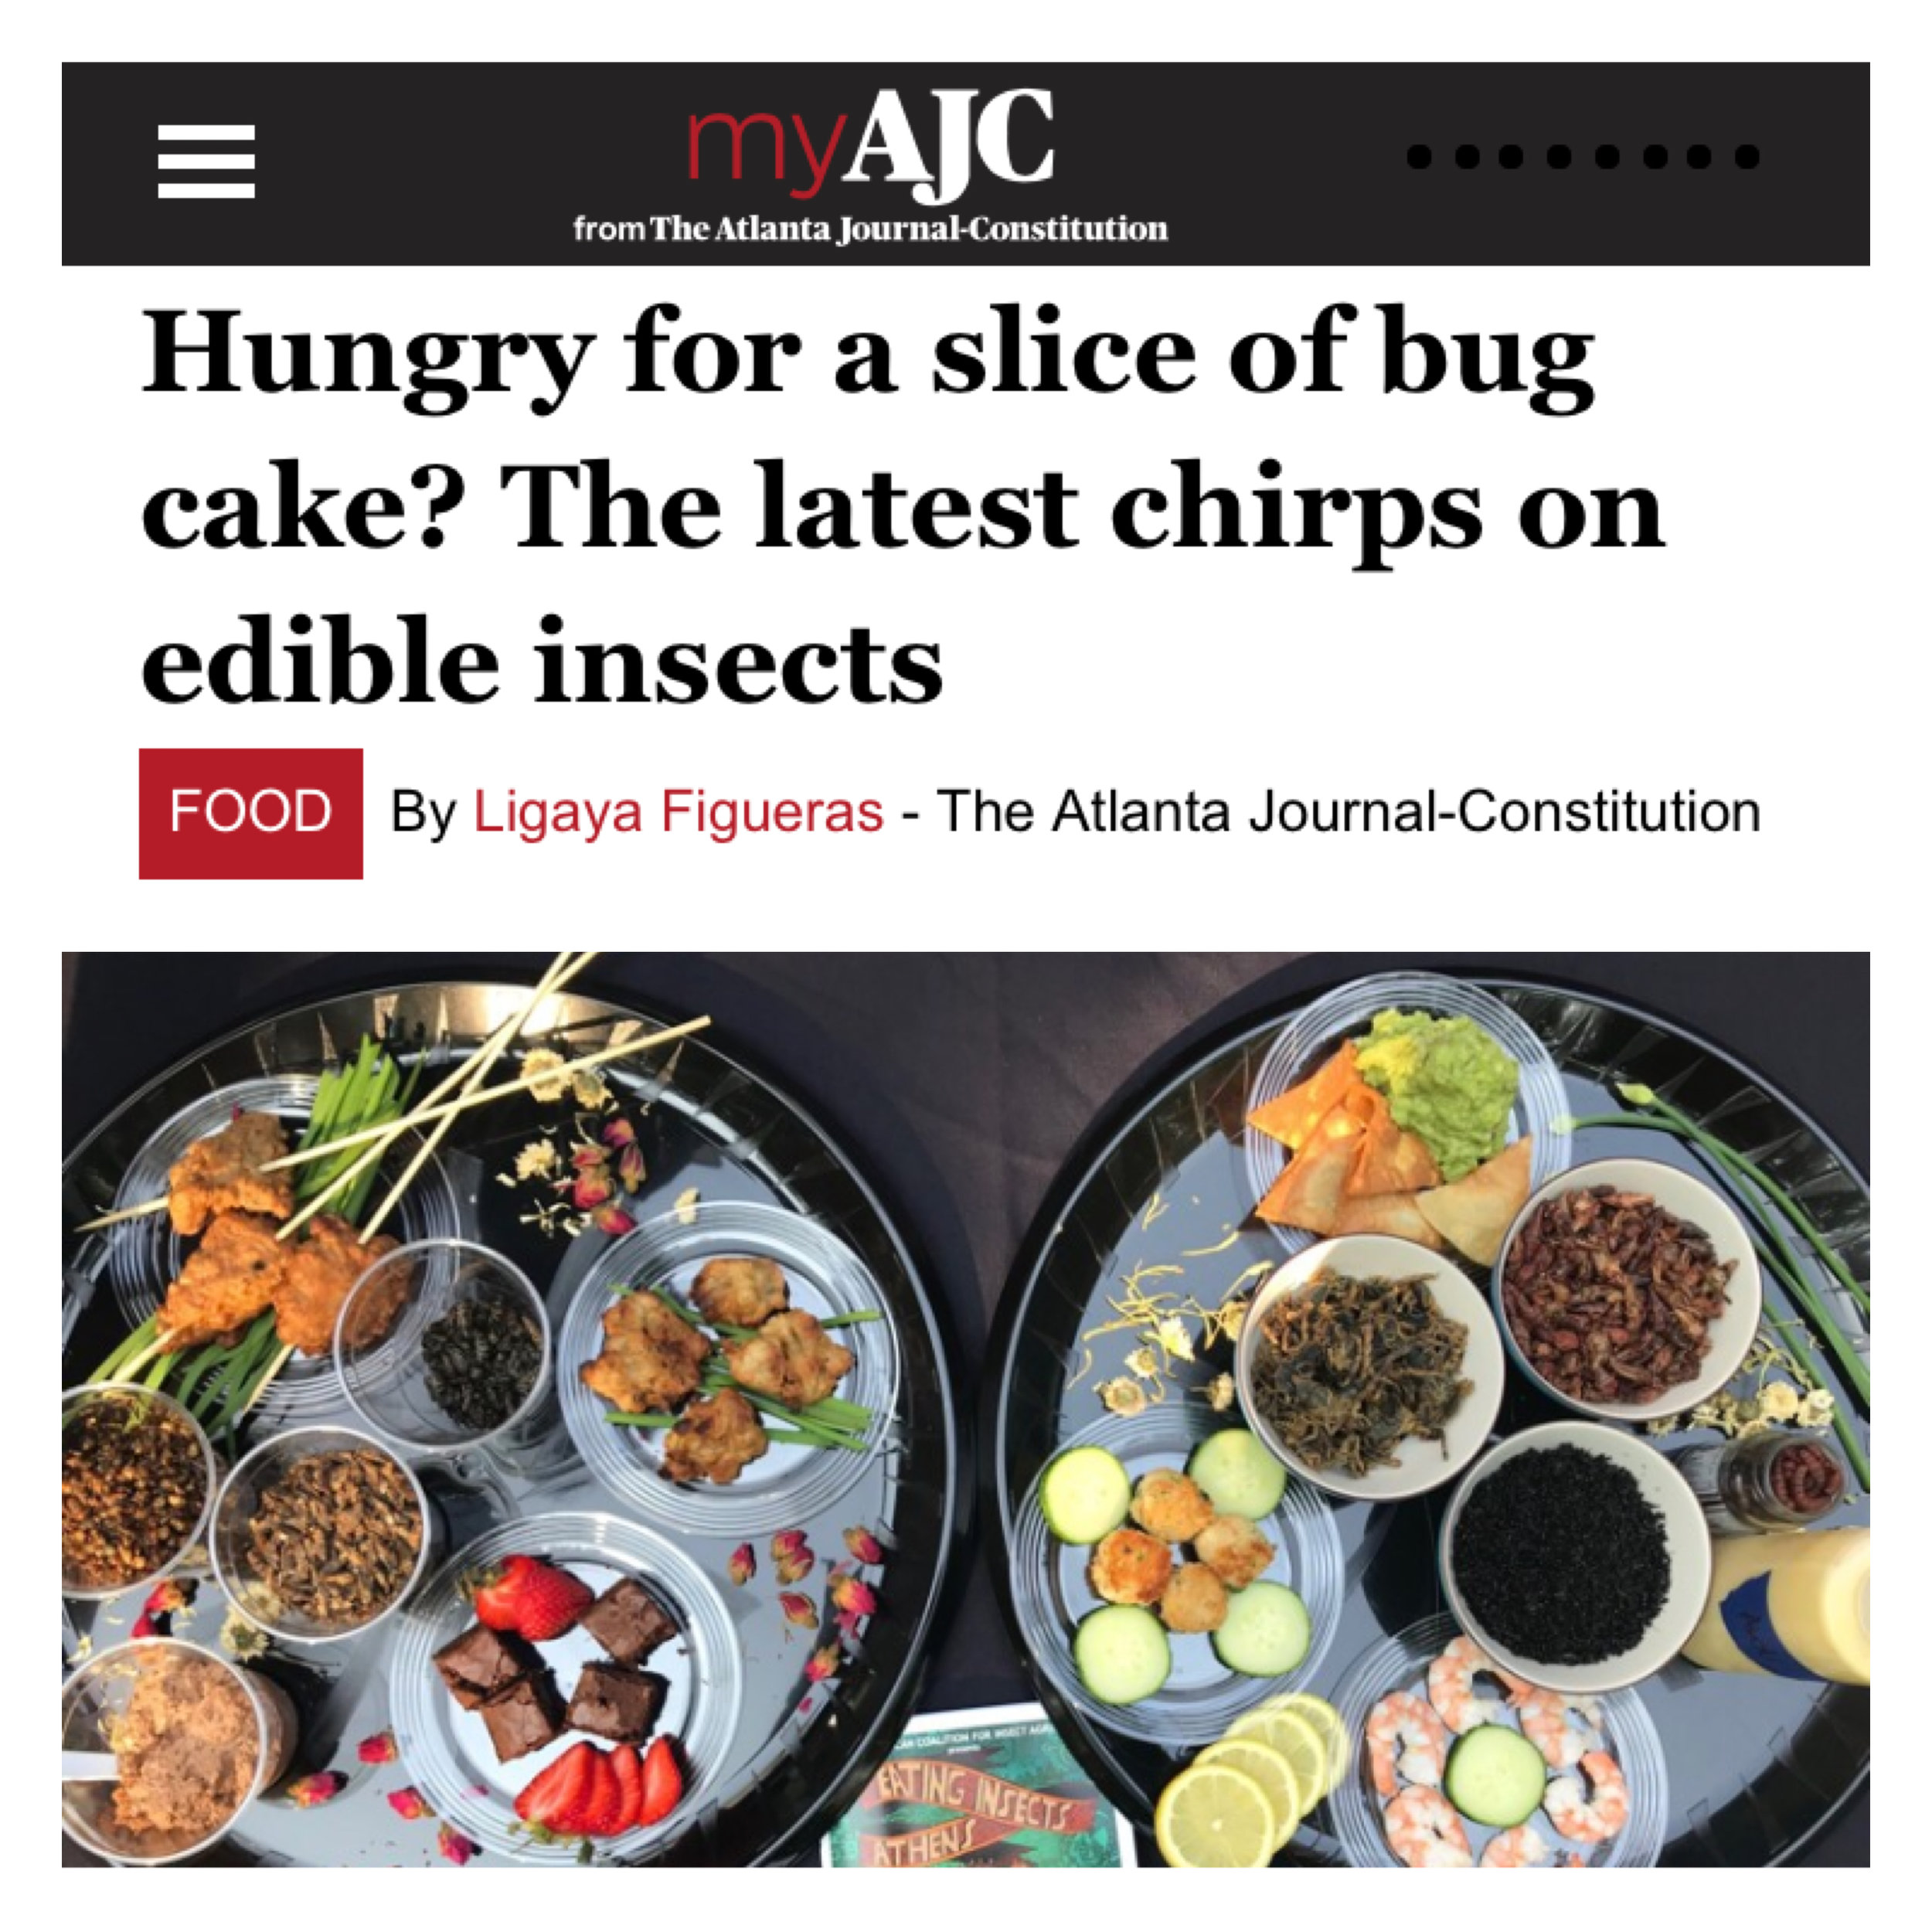 https://www.ajc.com/entertainment/dining/hungry-for-slice-bug-cake-the-latest-chirps-edible-insects/pjIGC8Eie4NECIysxRjocK/